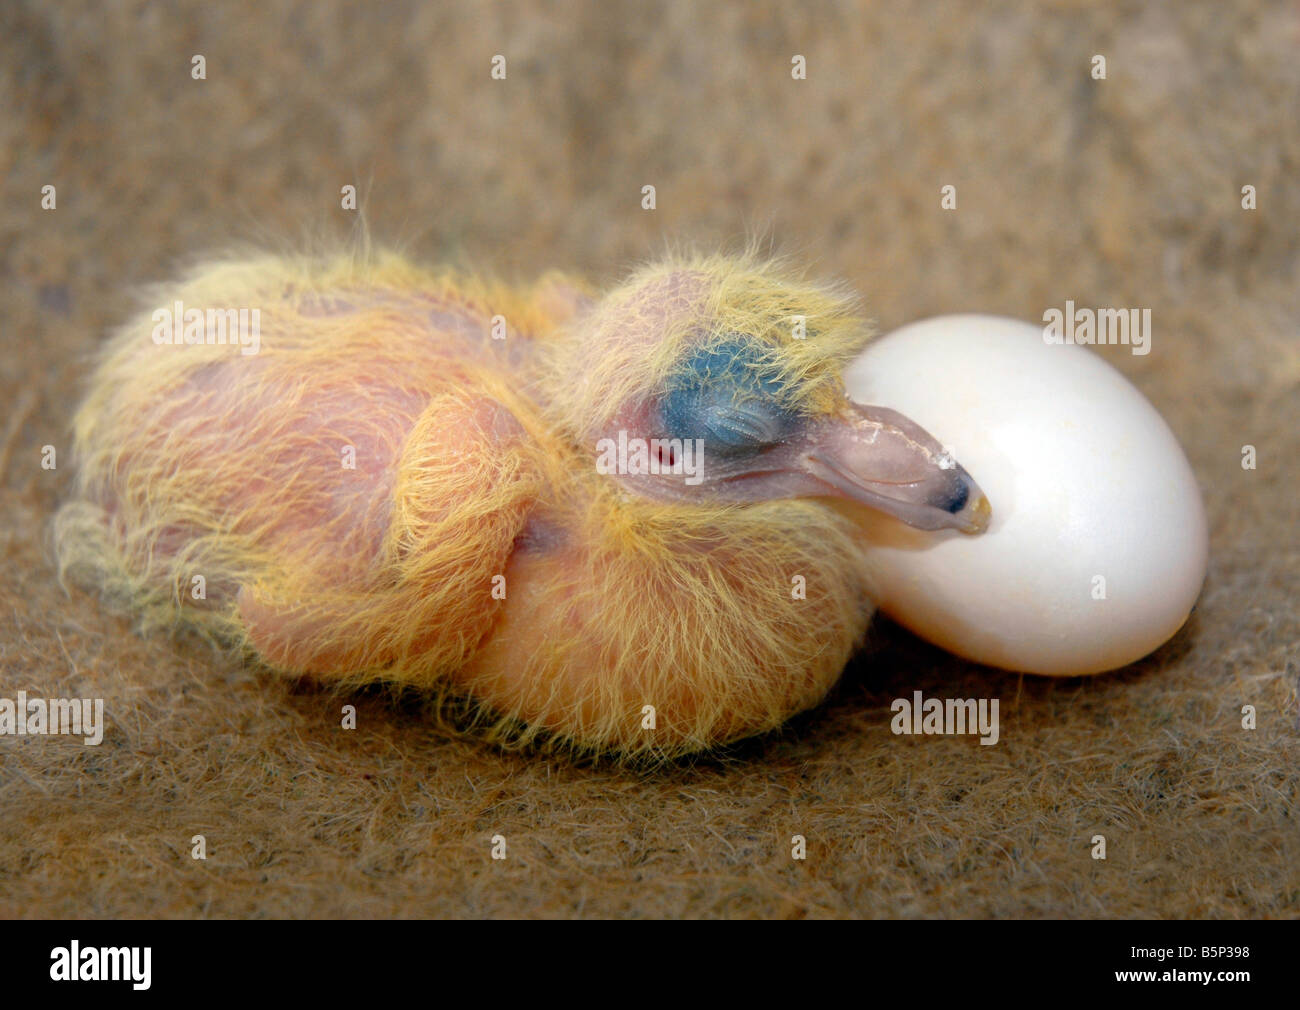 Chick, 'dove chick', 'pigeon chick' squab and egg - Stock Image